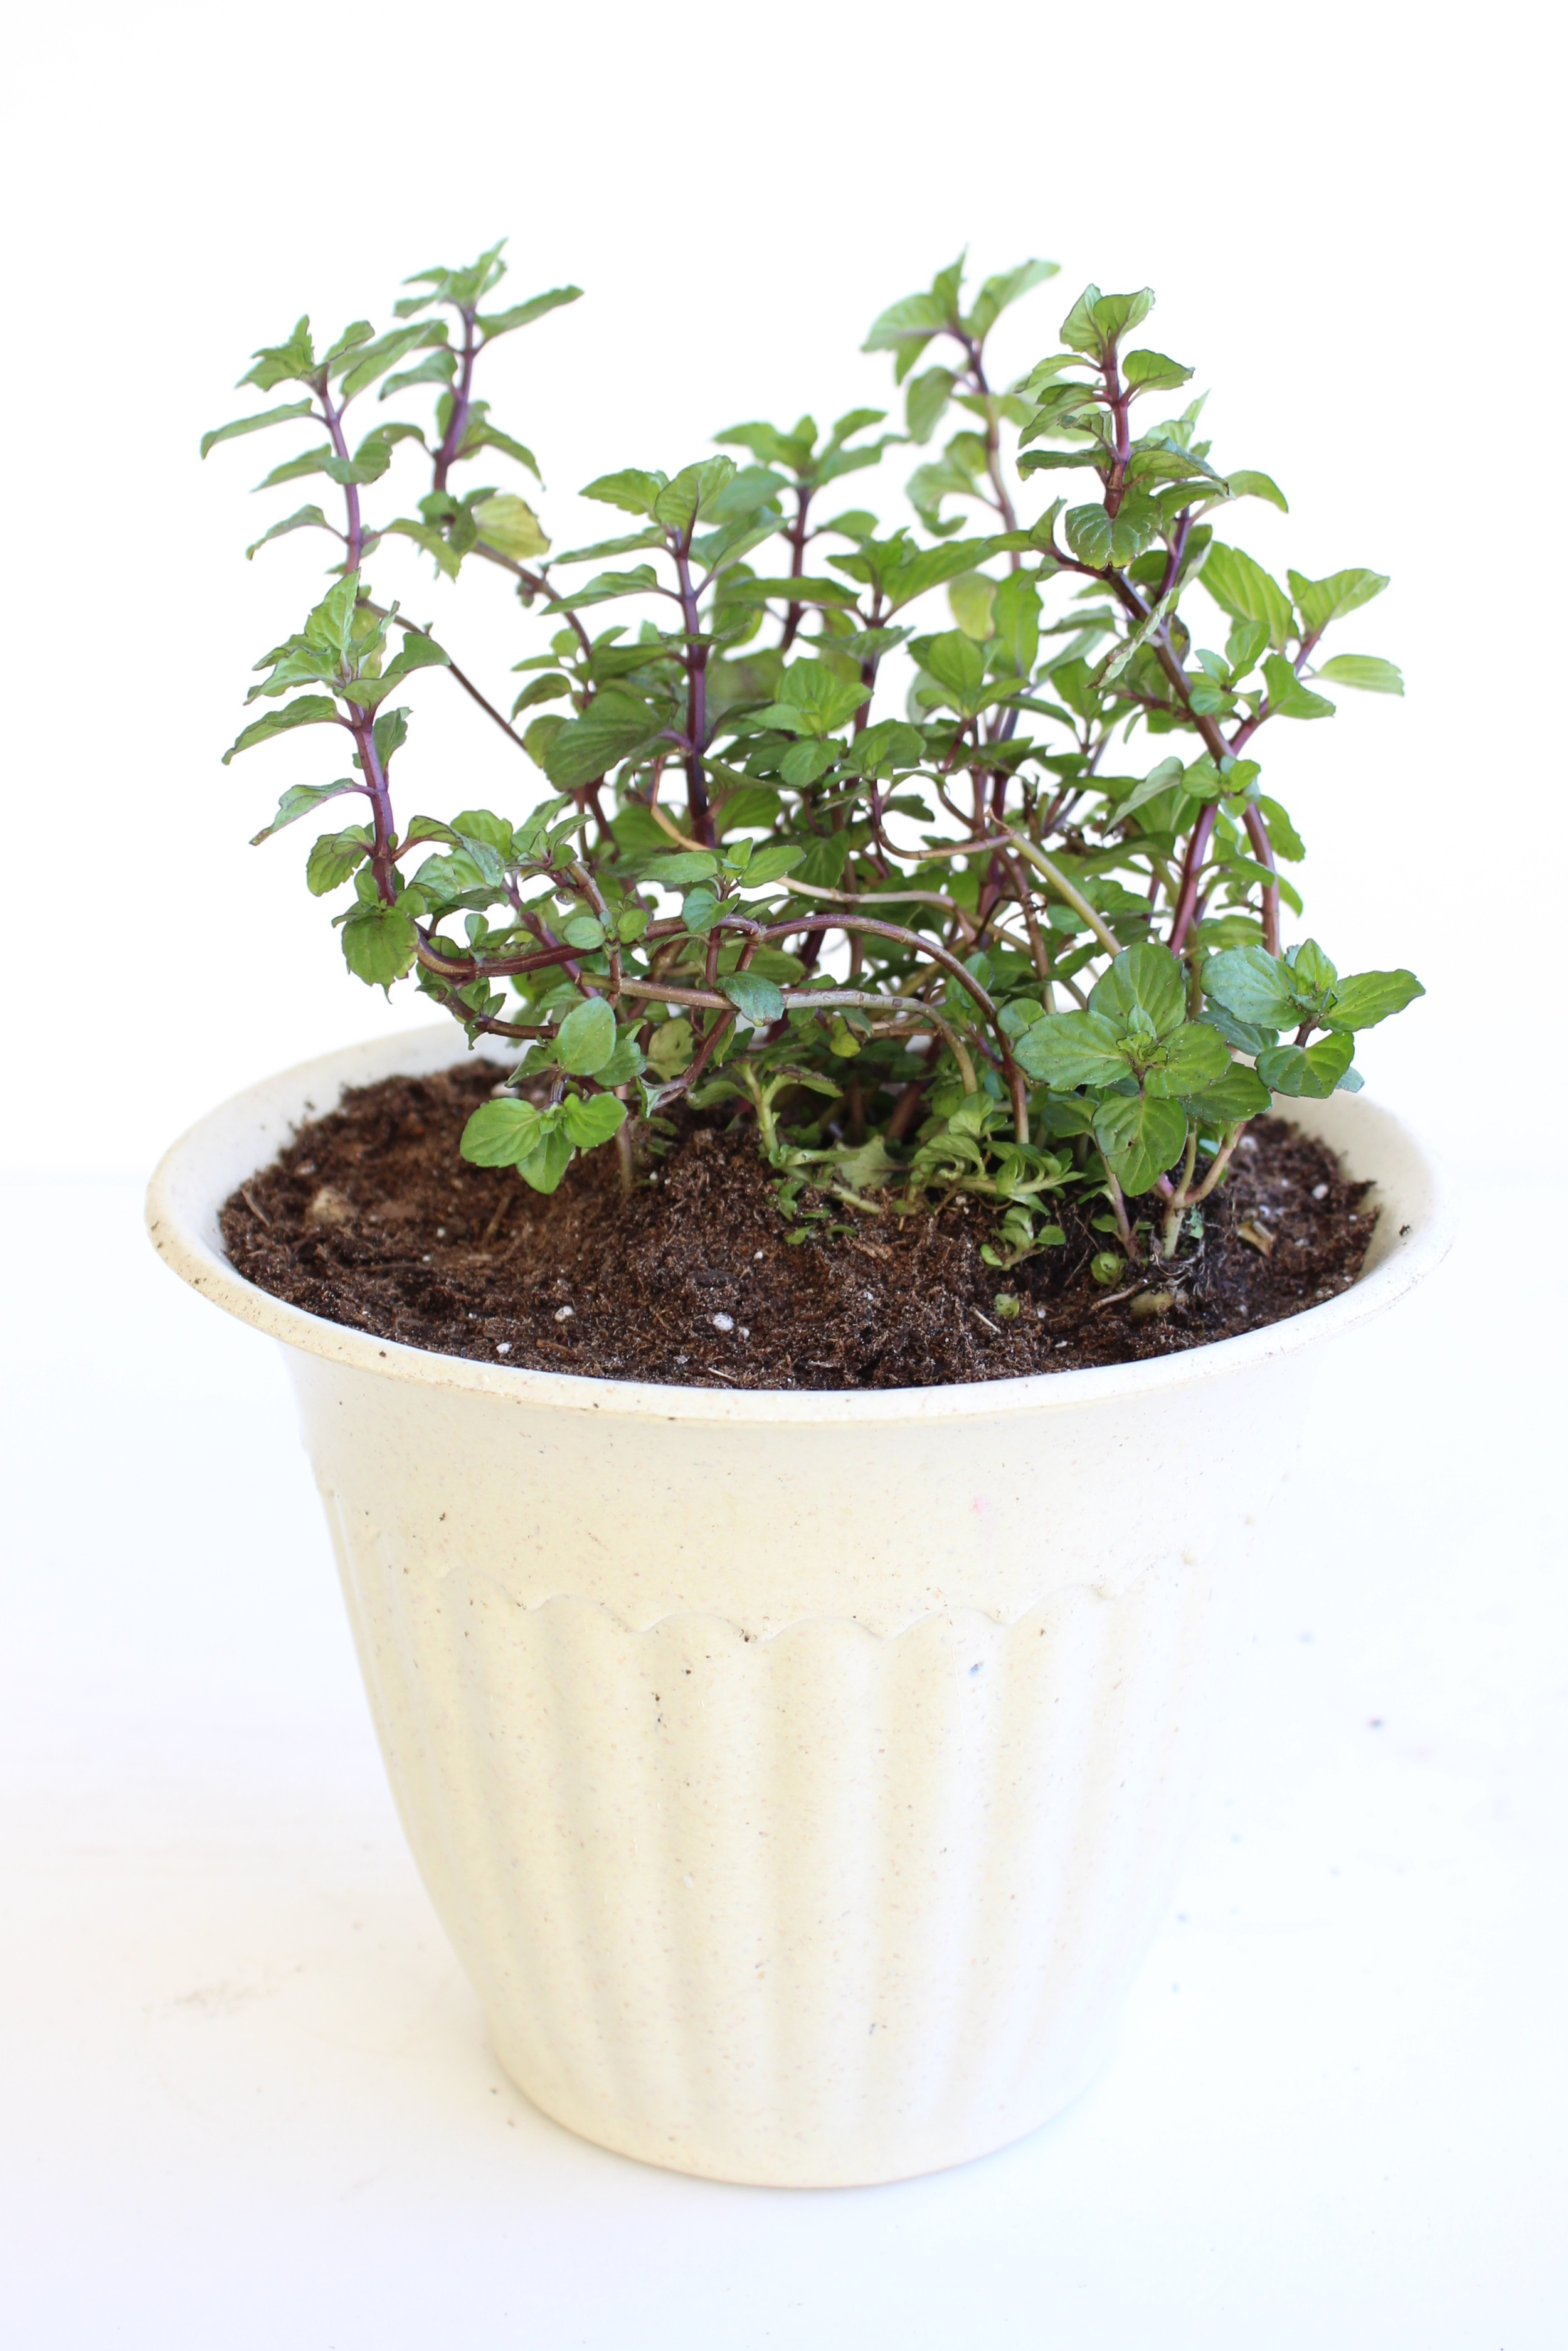 Isn't this mint plant beautiful? Another $0.99 herb from our local nursery!